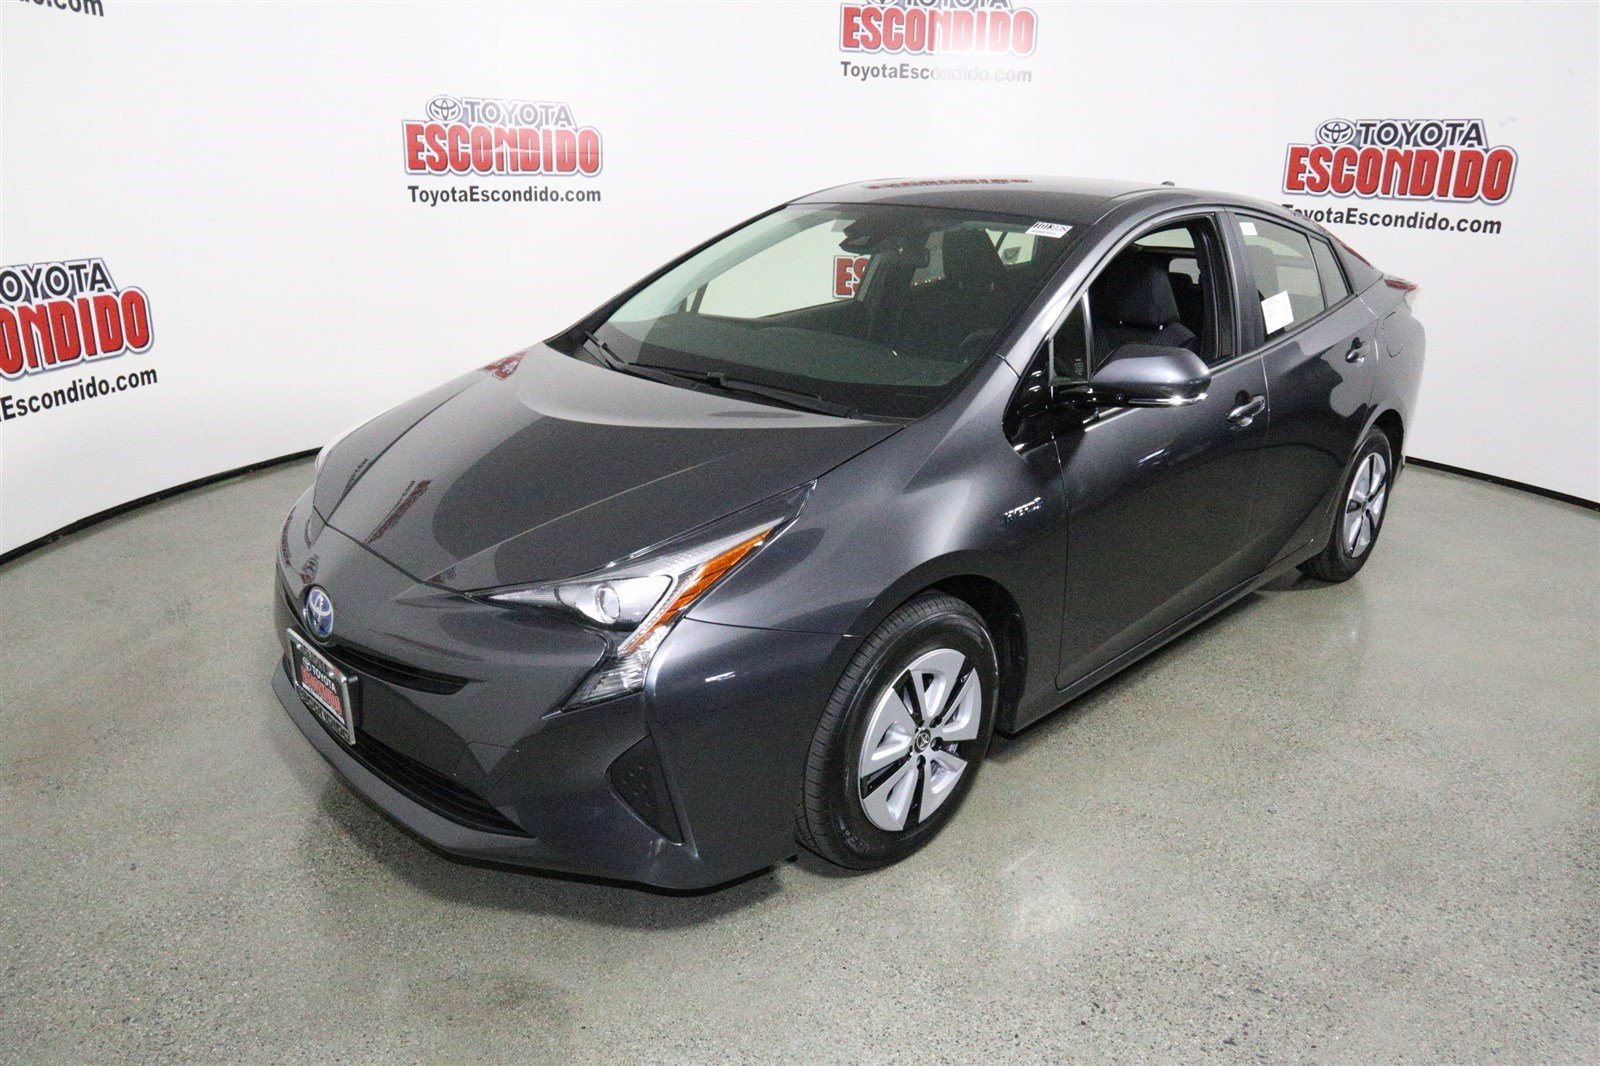 2016 toyota prius two eco hatchback review ratings edmunds. Black Bedroom Furniture Sets. Home Design Ideas